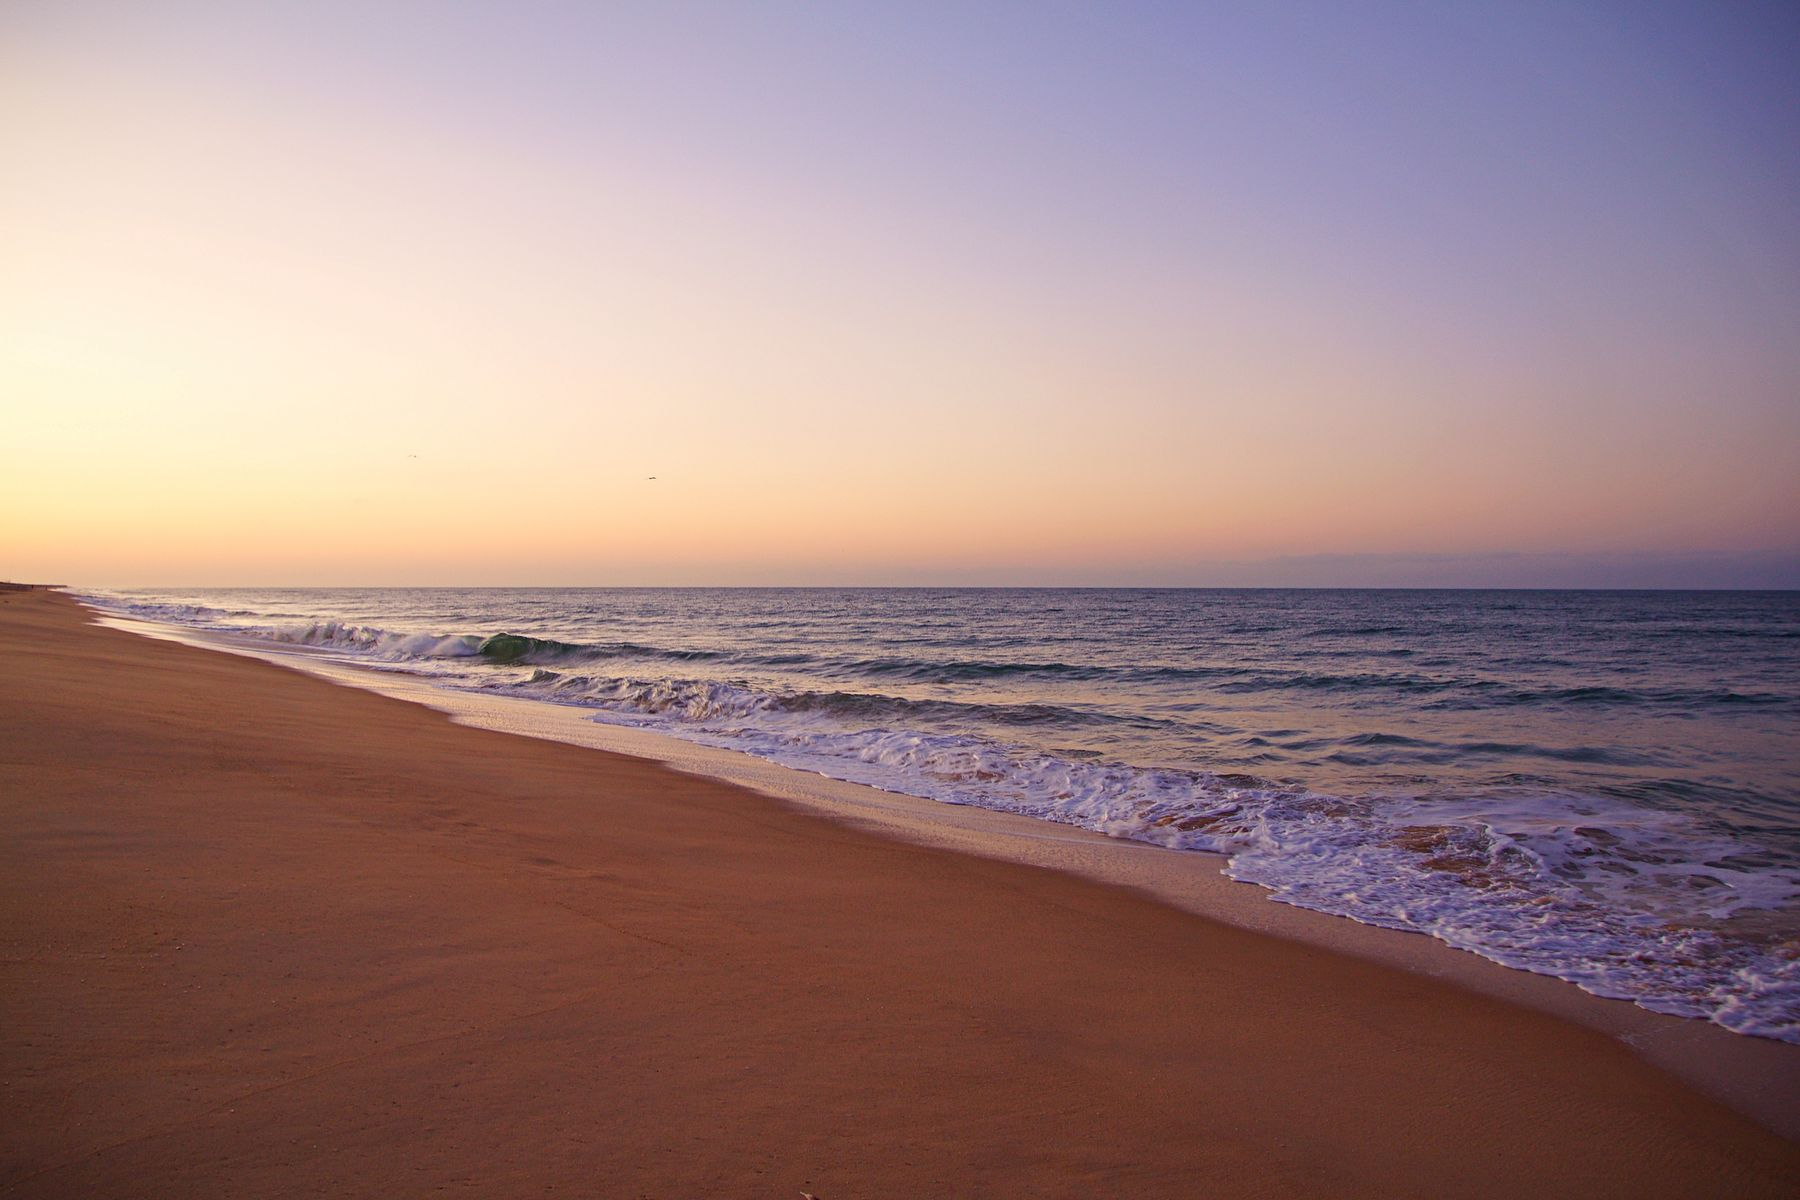 Beach waves in the Algarve, Portugal at sunset.